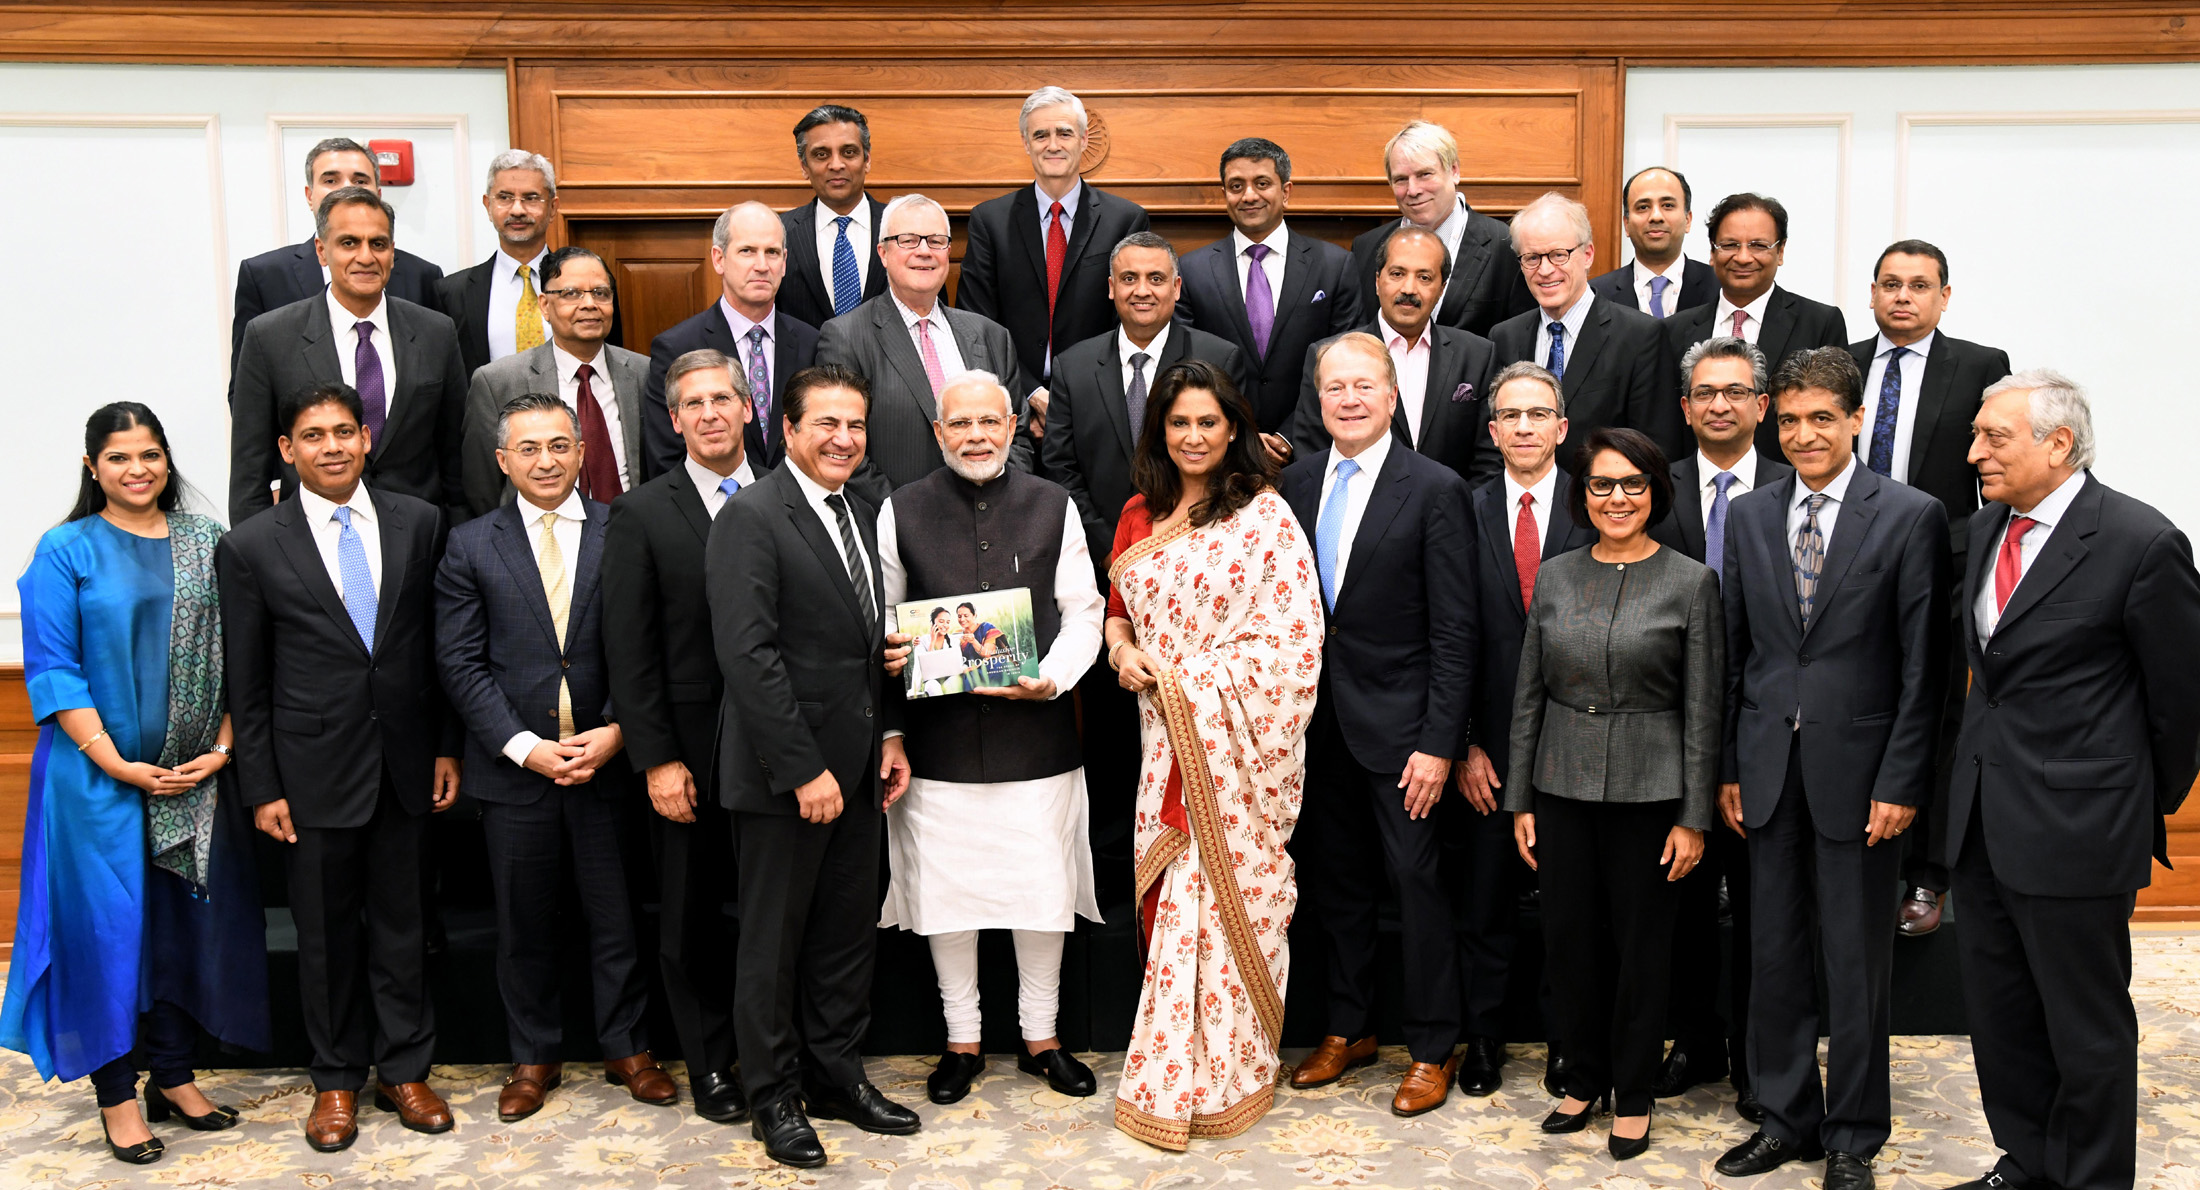 The board members of United States India Strategic Partnership Forum comprising senior industry and business captains call on the Prime Minister Narendra Modi in New Delhi (Photo courtesy: PIB